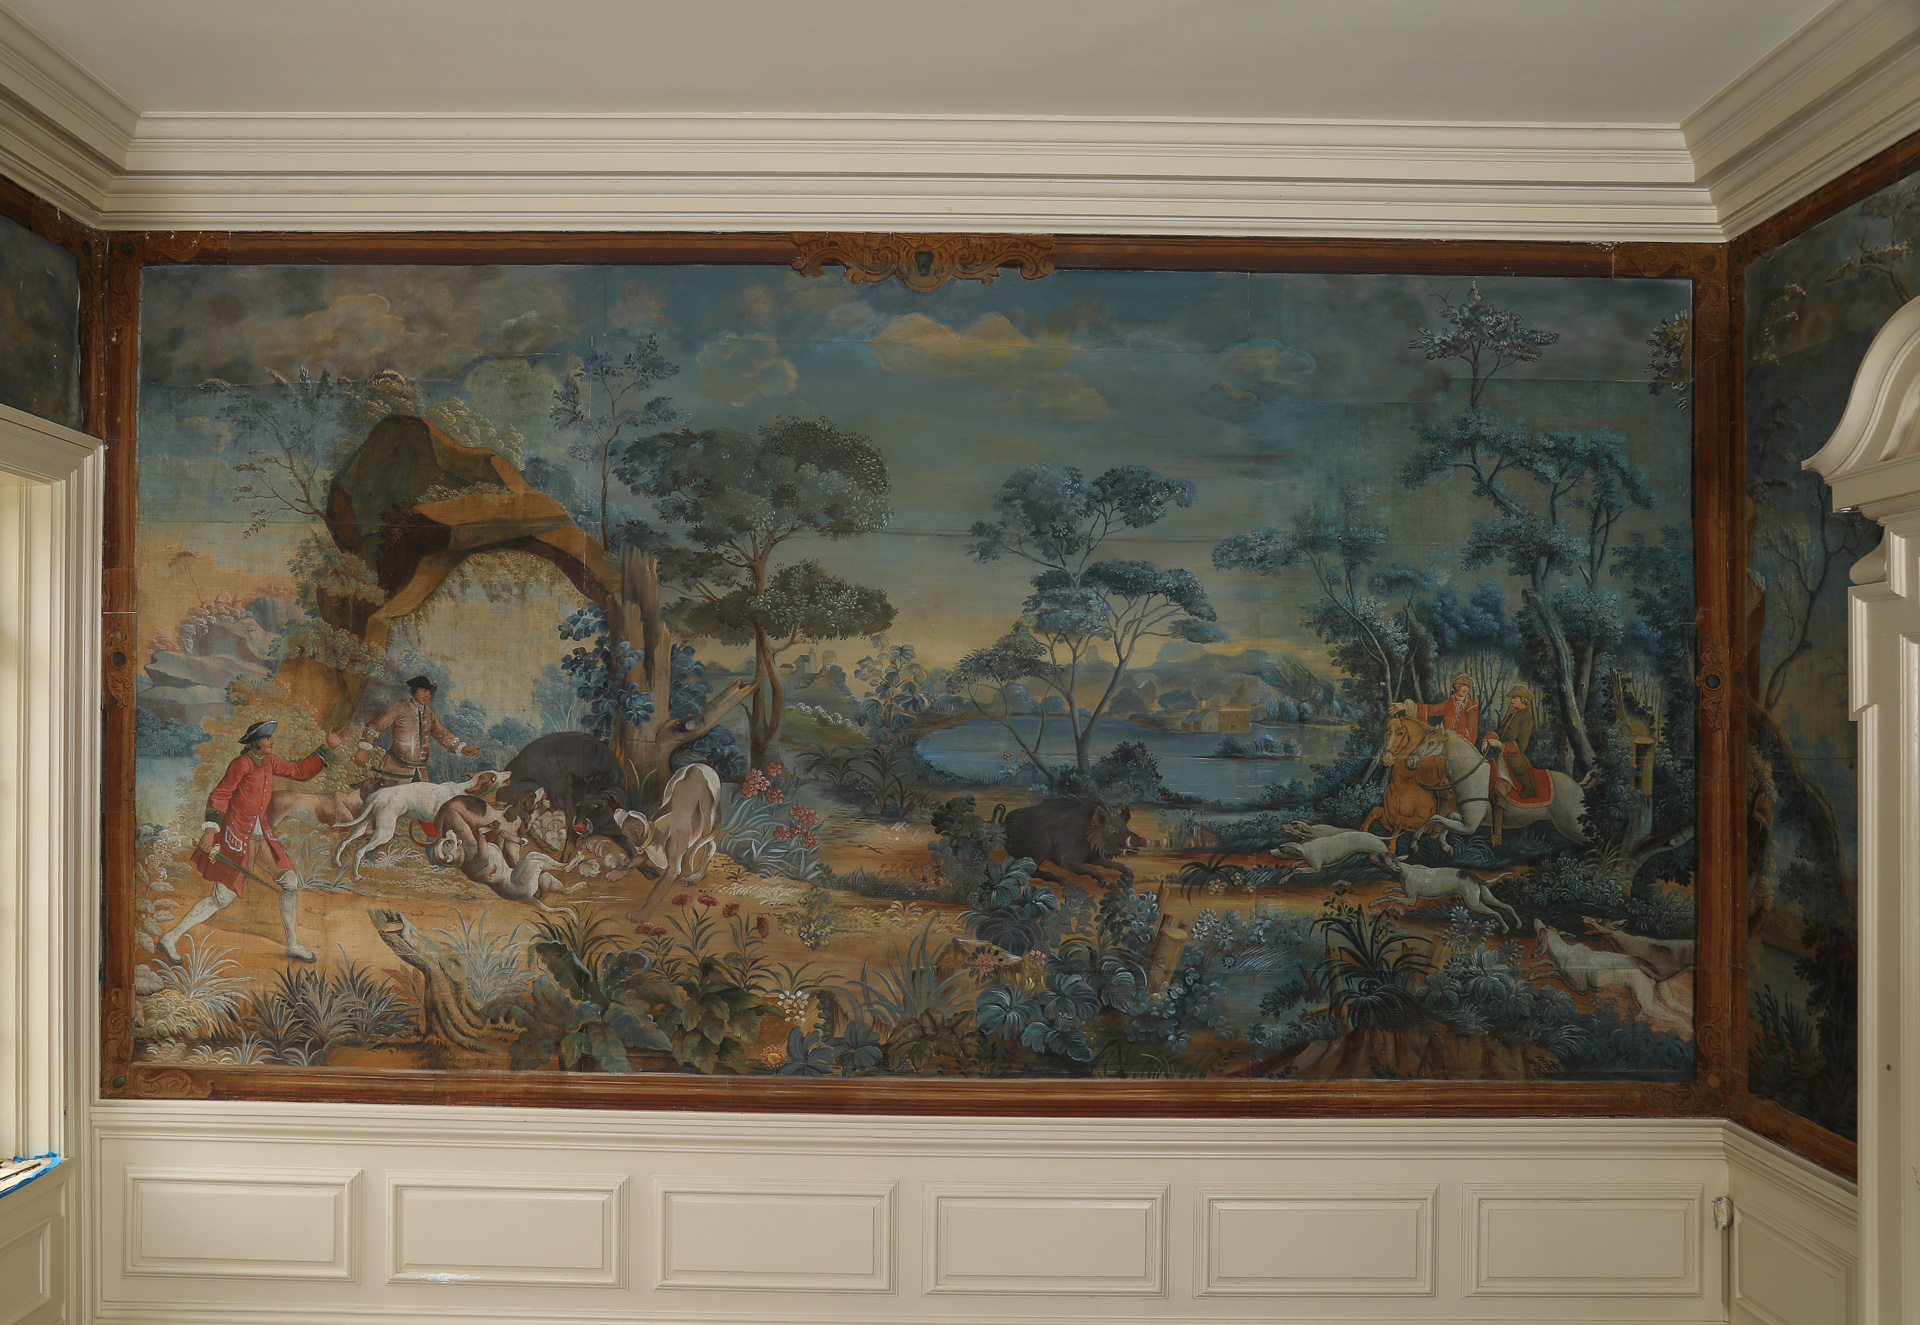 Mural of 18th century boar hunt installed in historic house